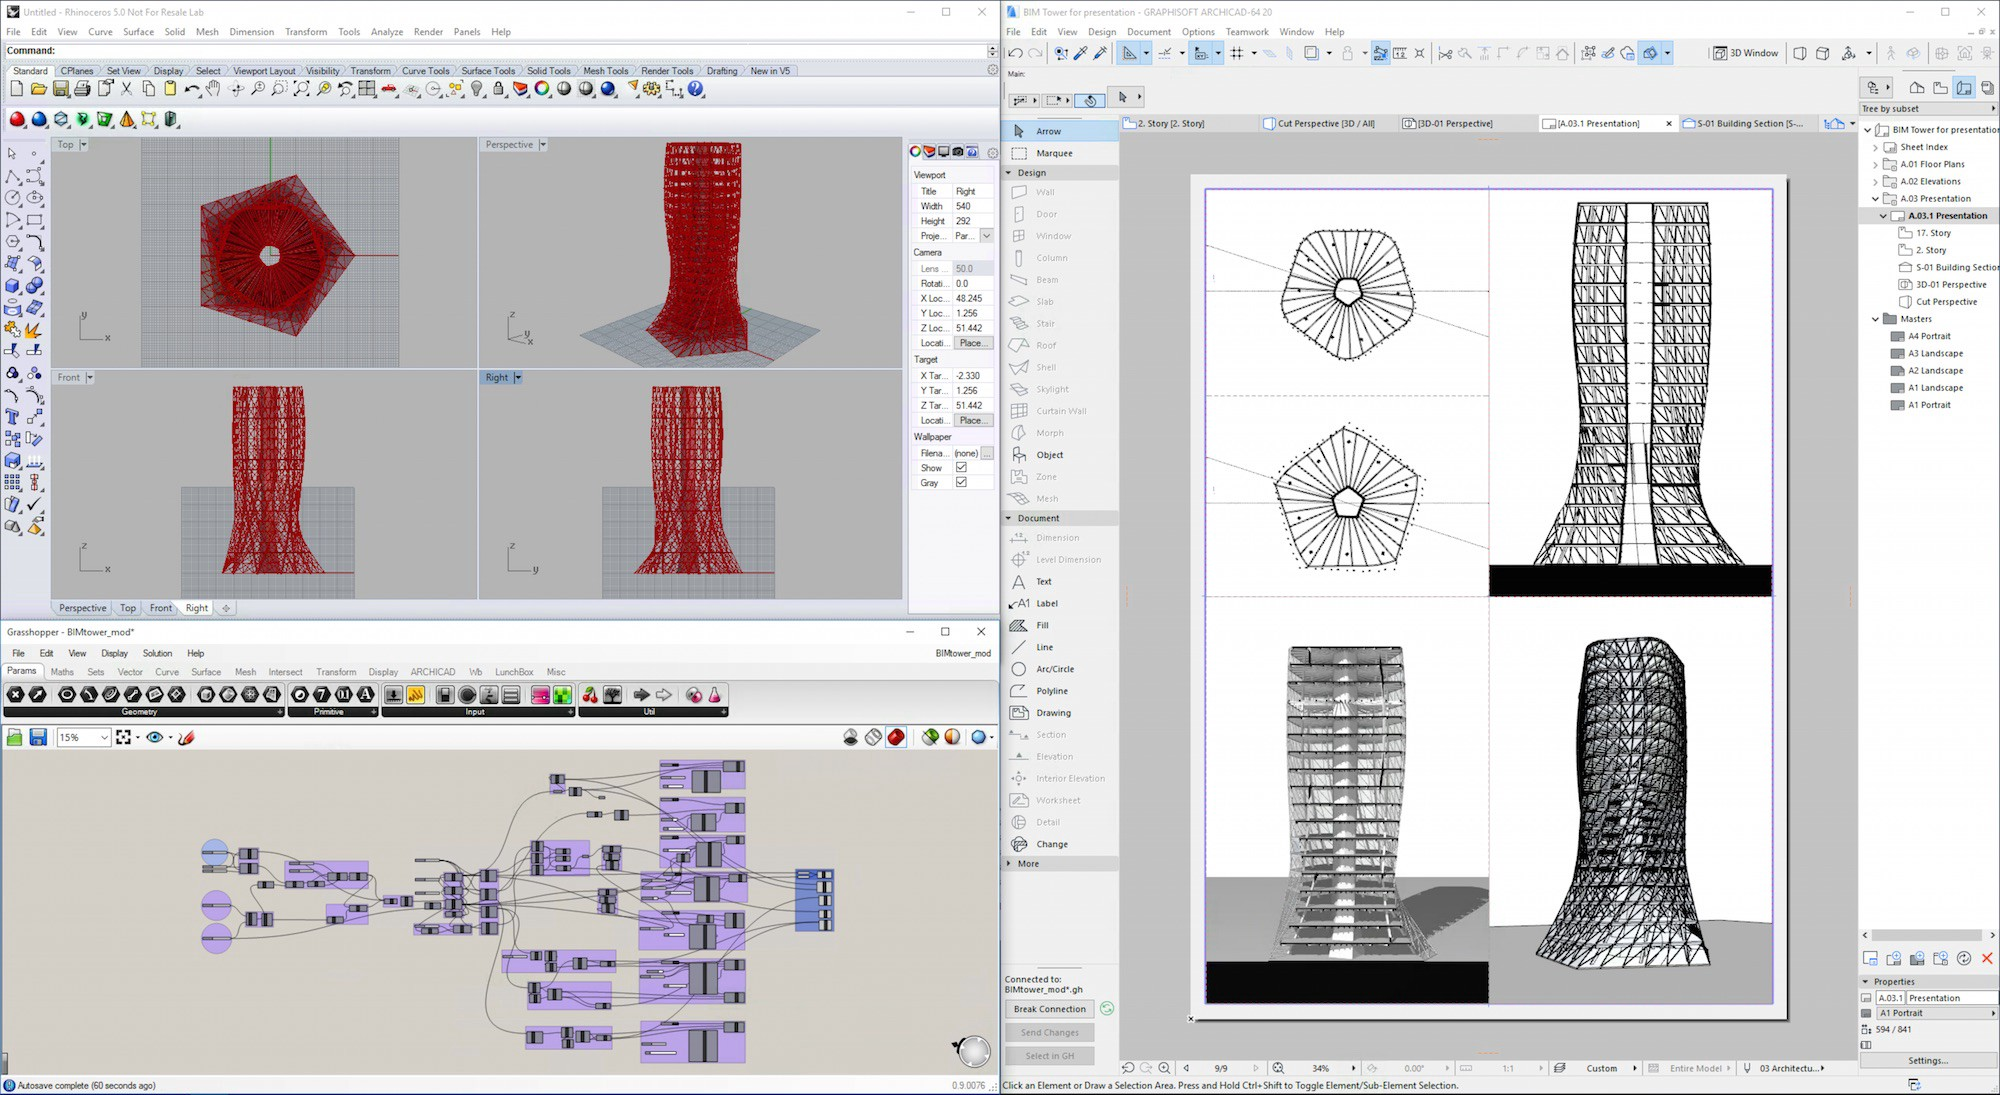 GRAPHISOFT's Rhino-Grasshopper-ARCHICAD connection is a bi-directional link between all three programs that brings algorithmic design deep into the BIM workflow. As such, GRAPHISOFT aims to court high-end design firms around the world that are deeply invested in Rhino-Grasshopper workflows.